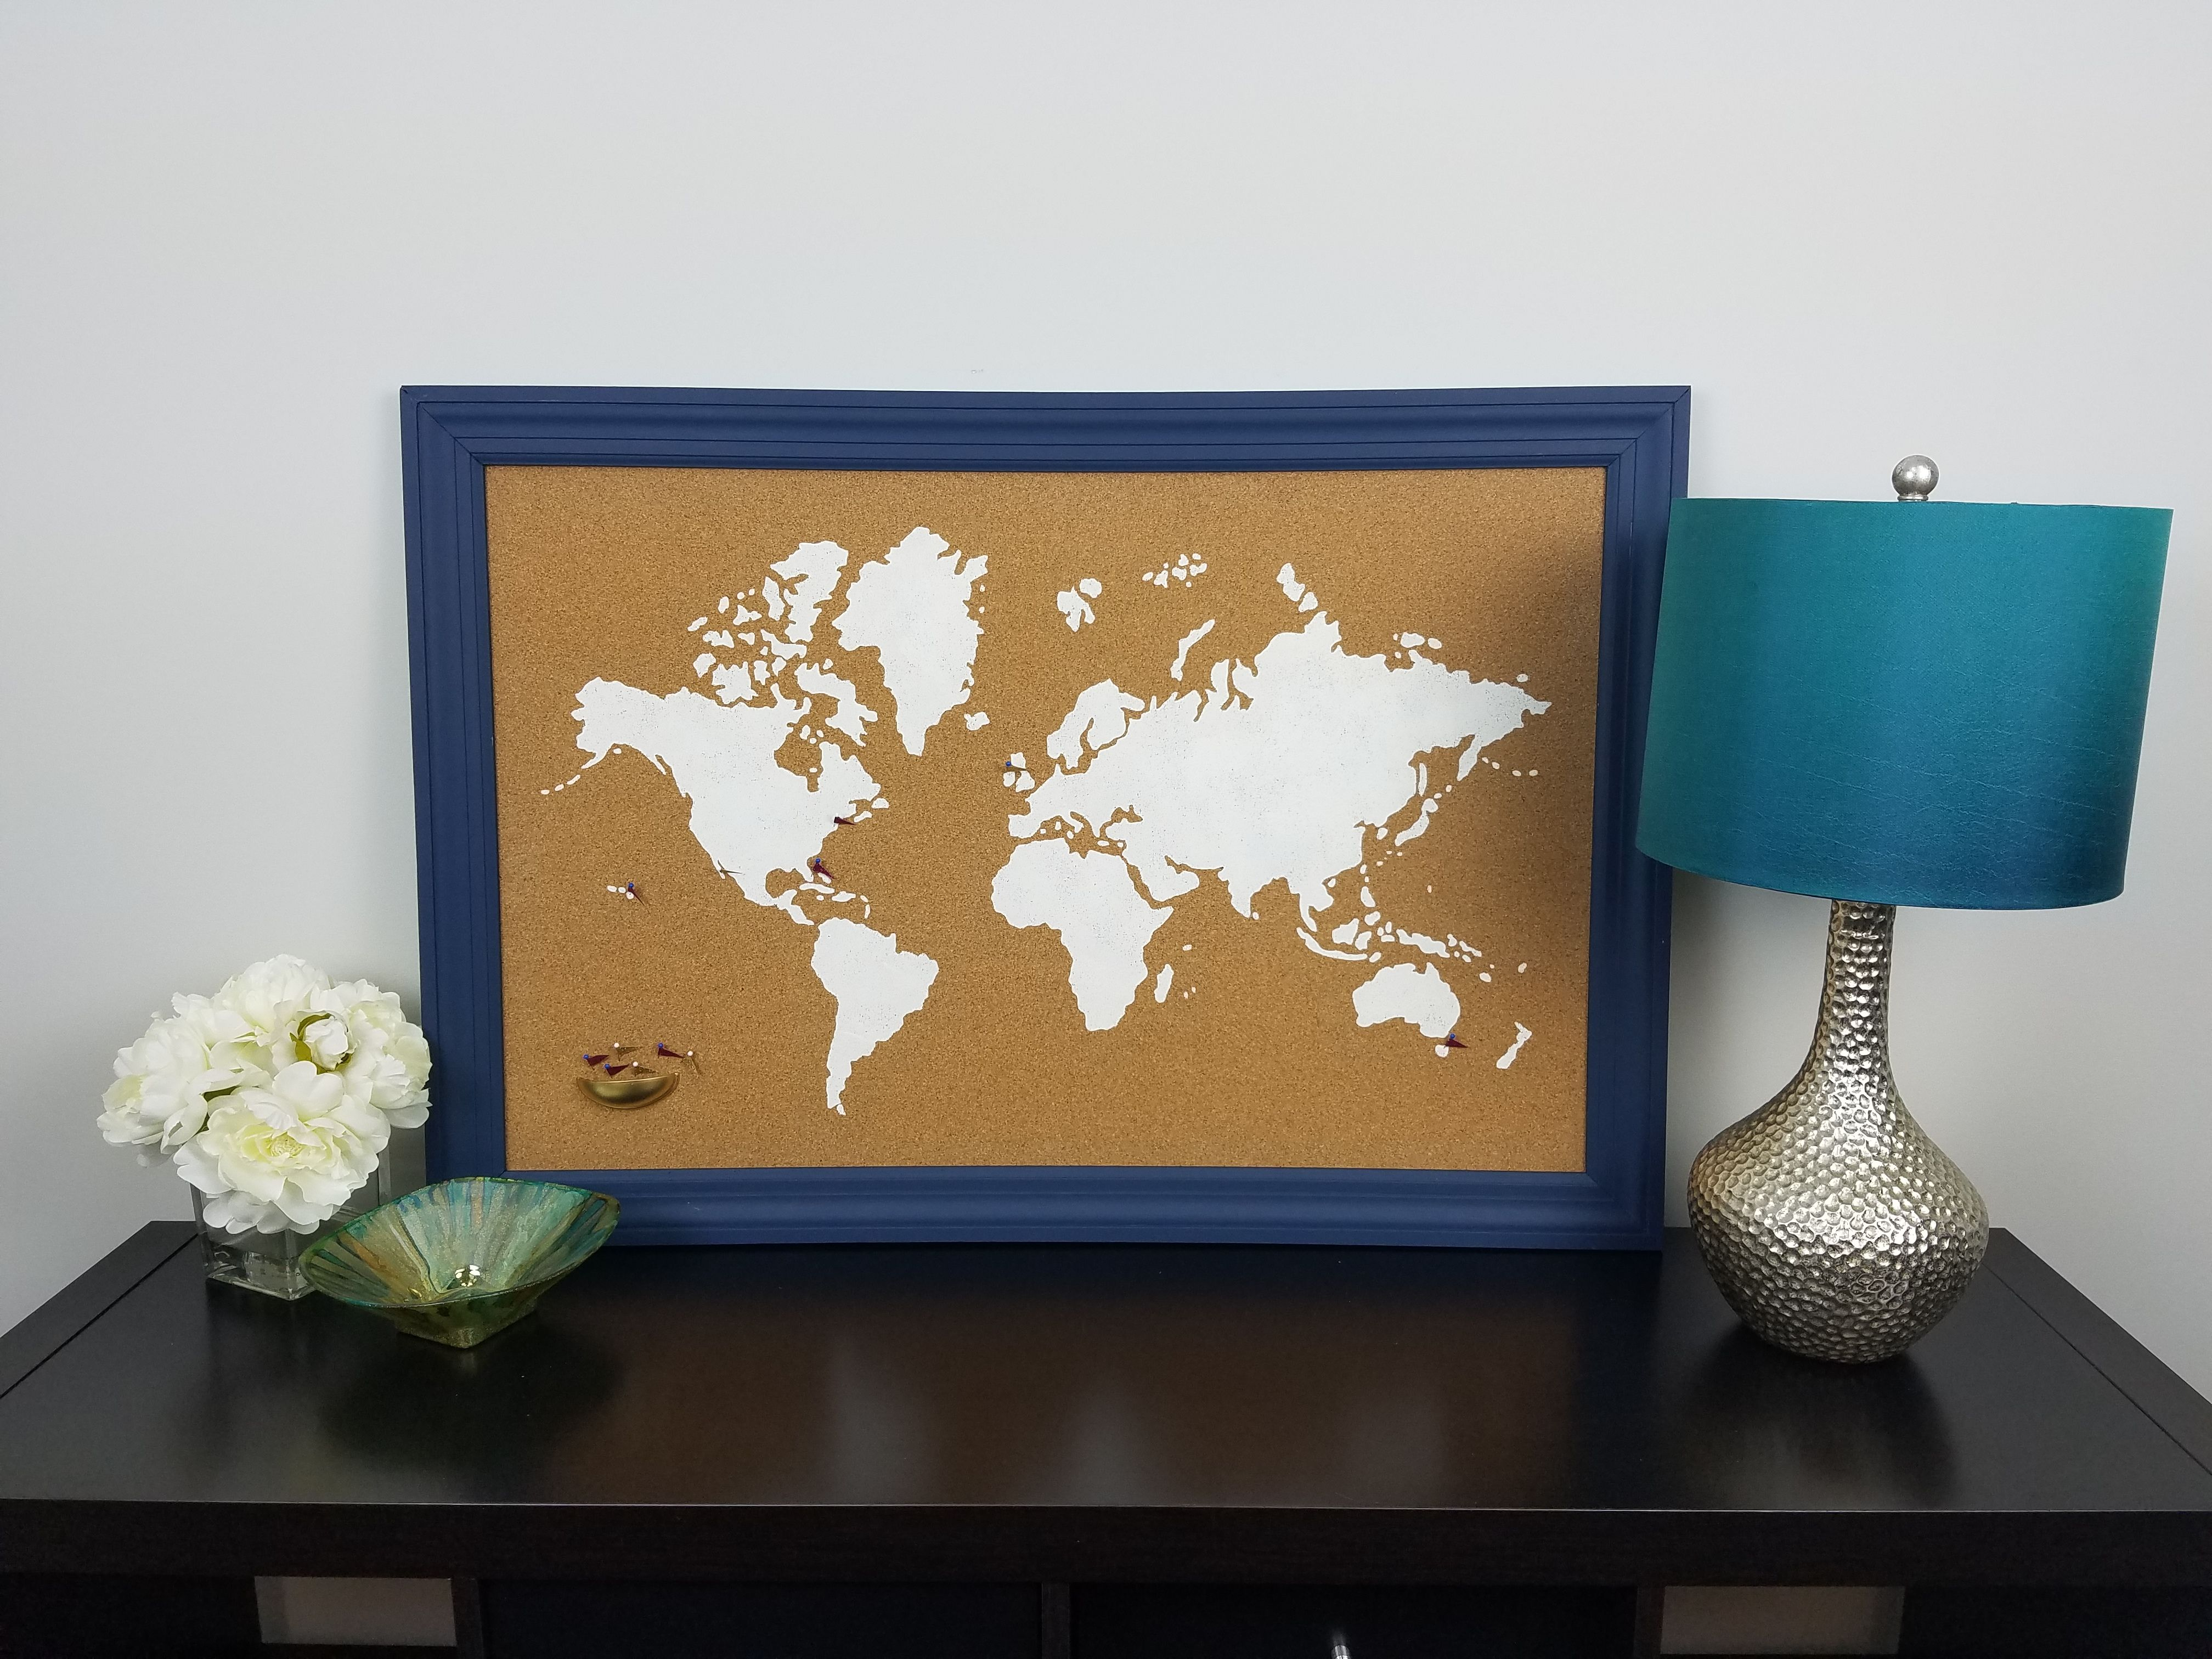 Watch the worlds easiest stencil project using a cork board and our watch the worlds easiest stencil project using a cork board and our world map pattern gumiabroncs Image collections